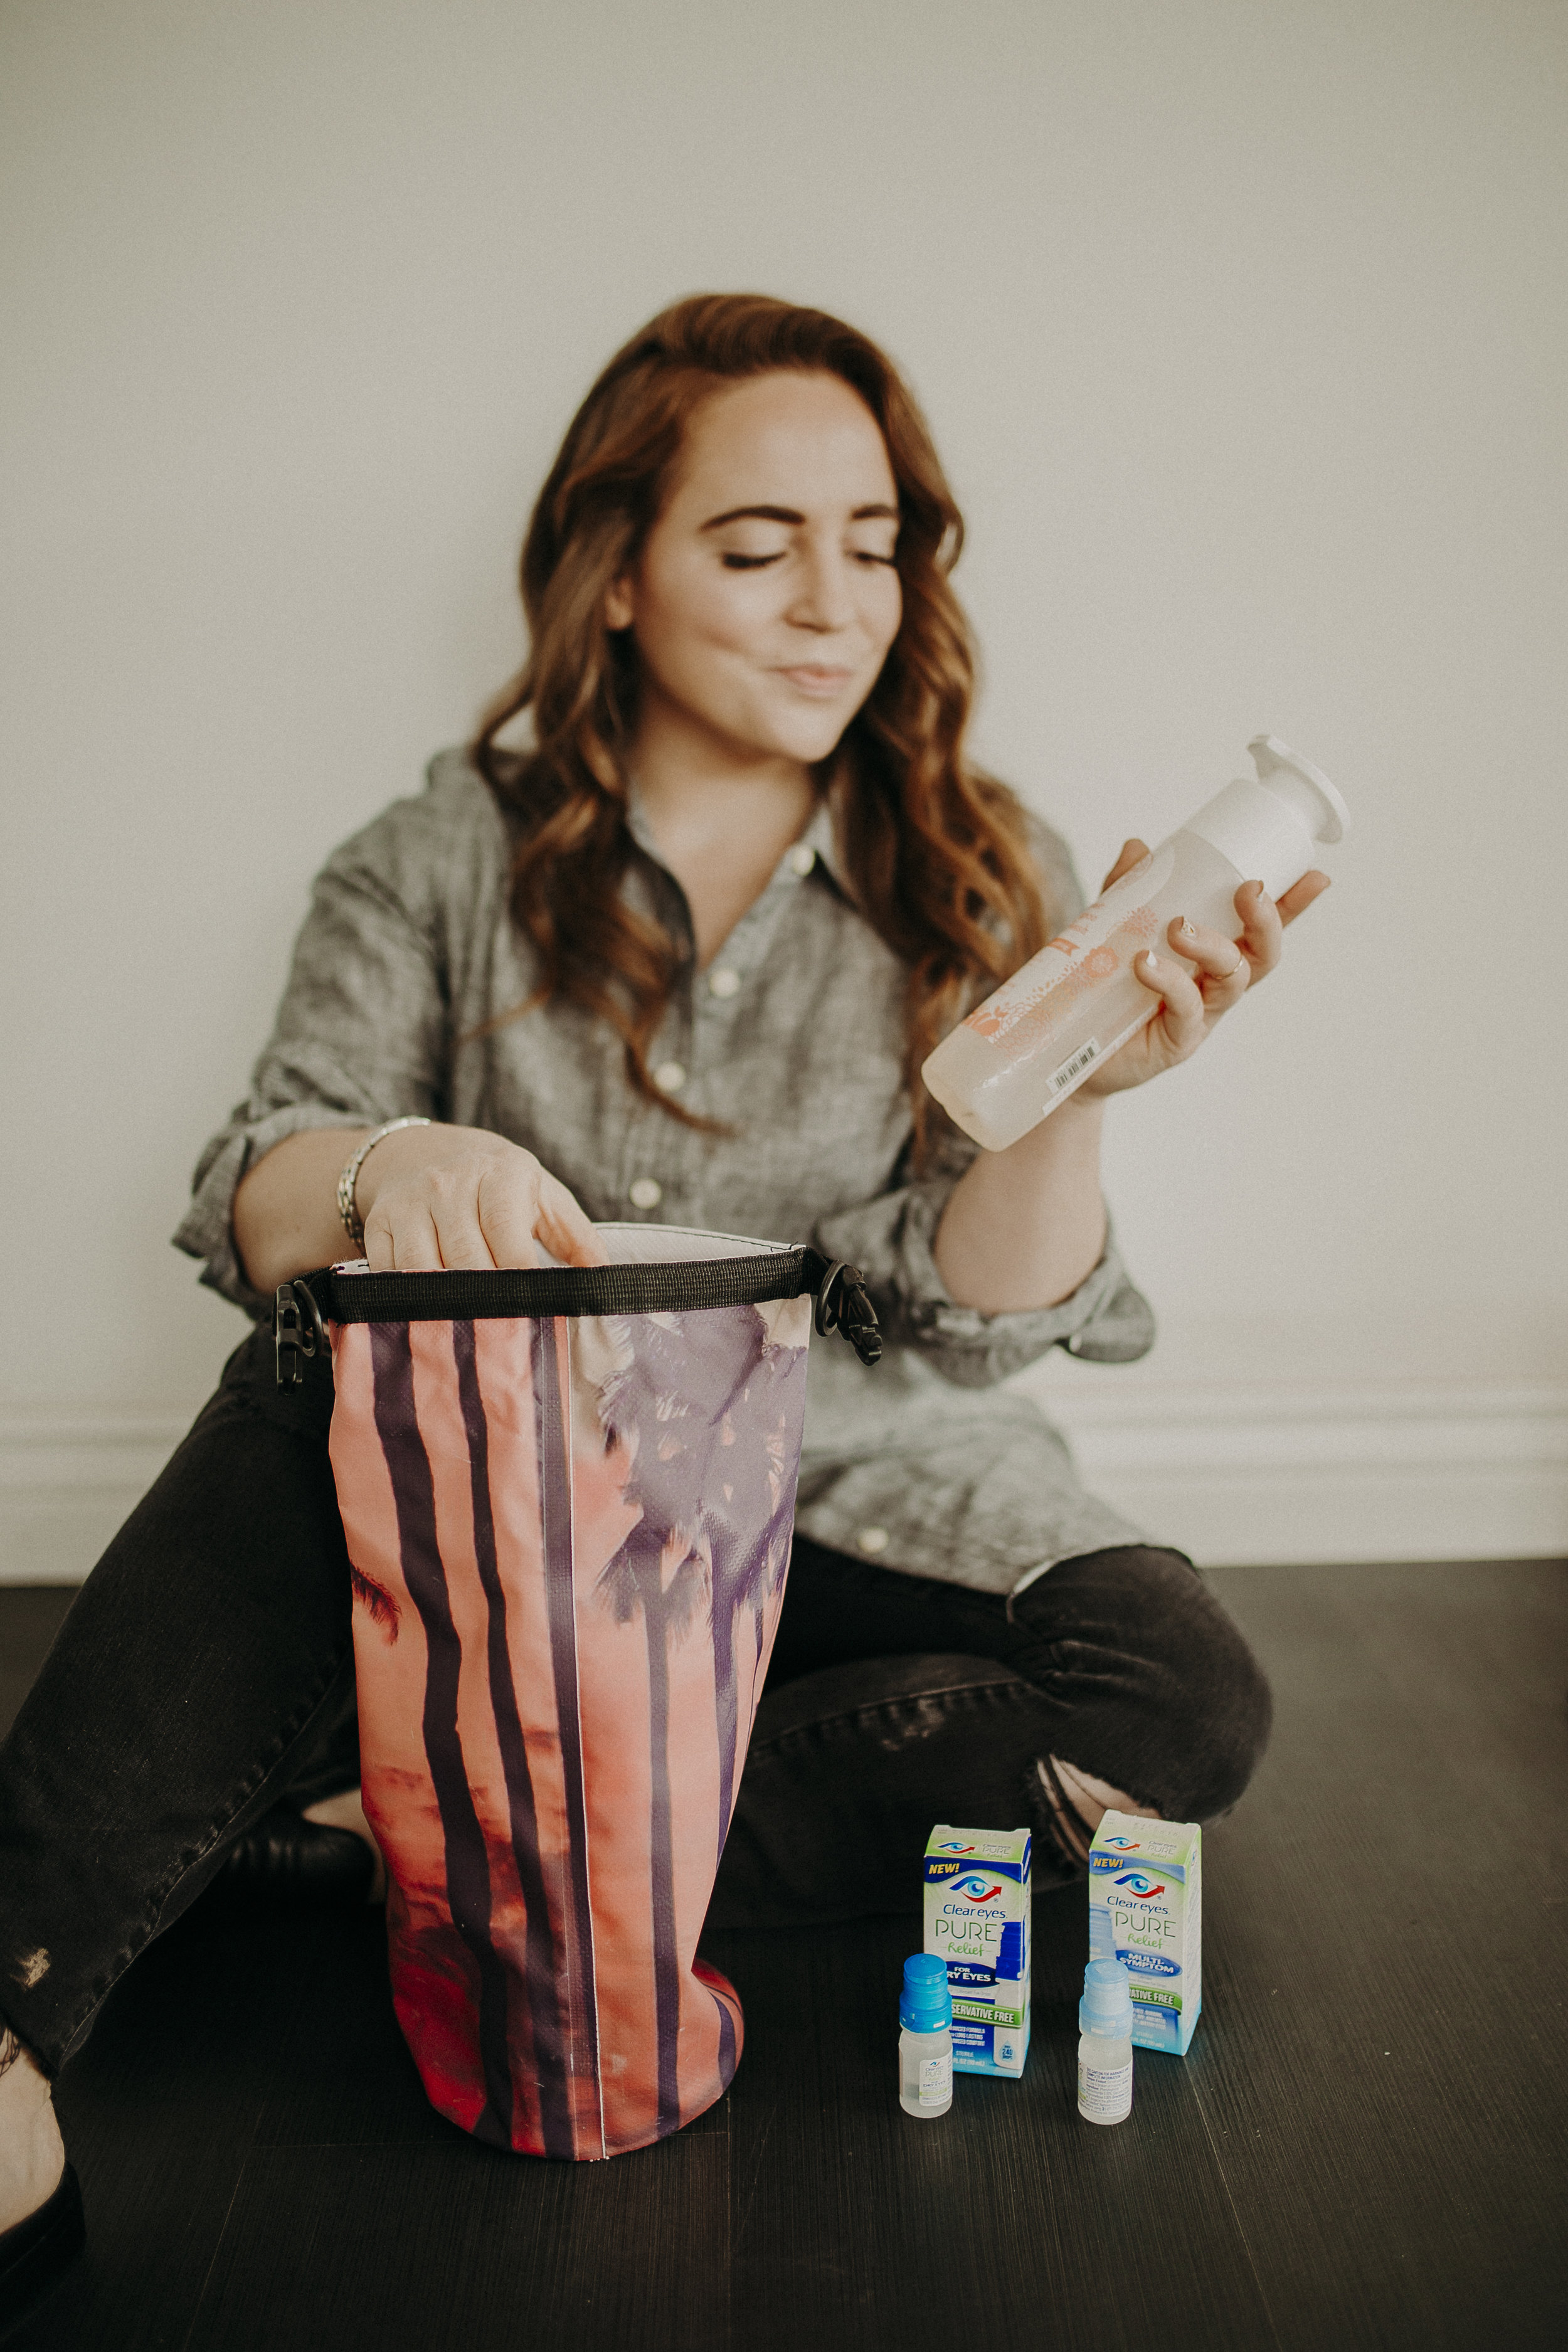 """If, for whatever reason, I need to travel with some larger products, I always bring my """"wet bag"""" (thanks to my friend Ariel who gifted it to me)! This awesome bag is made of leak proof material, and prevents your products from making a mess all over the rest of your belongings!"""